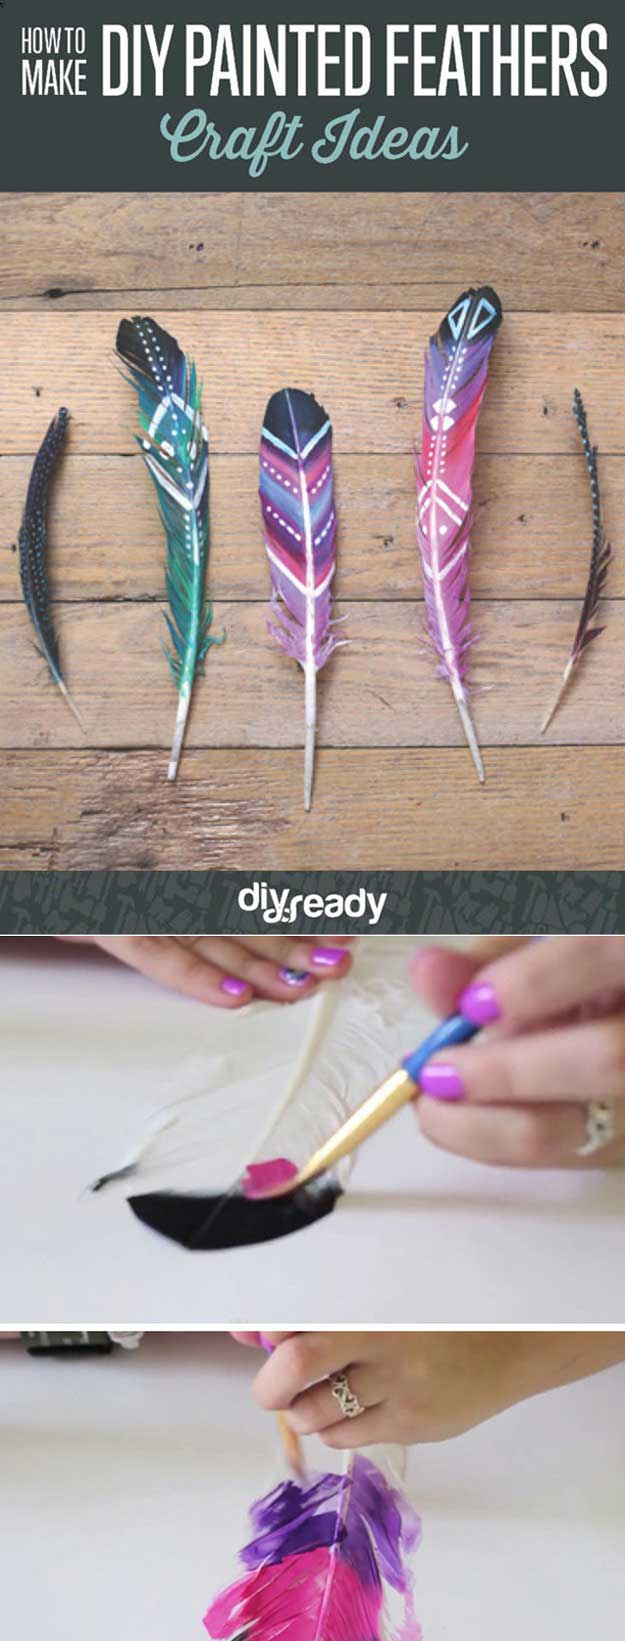 easy projects for teens